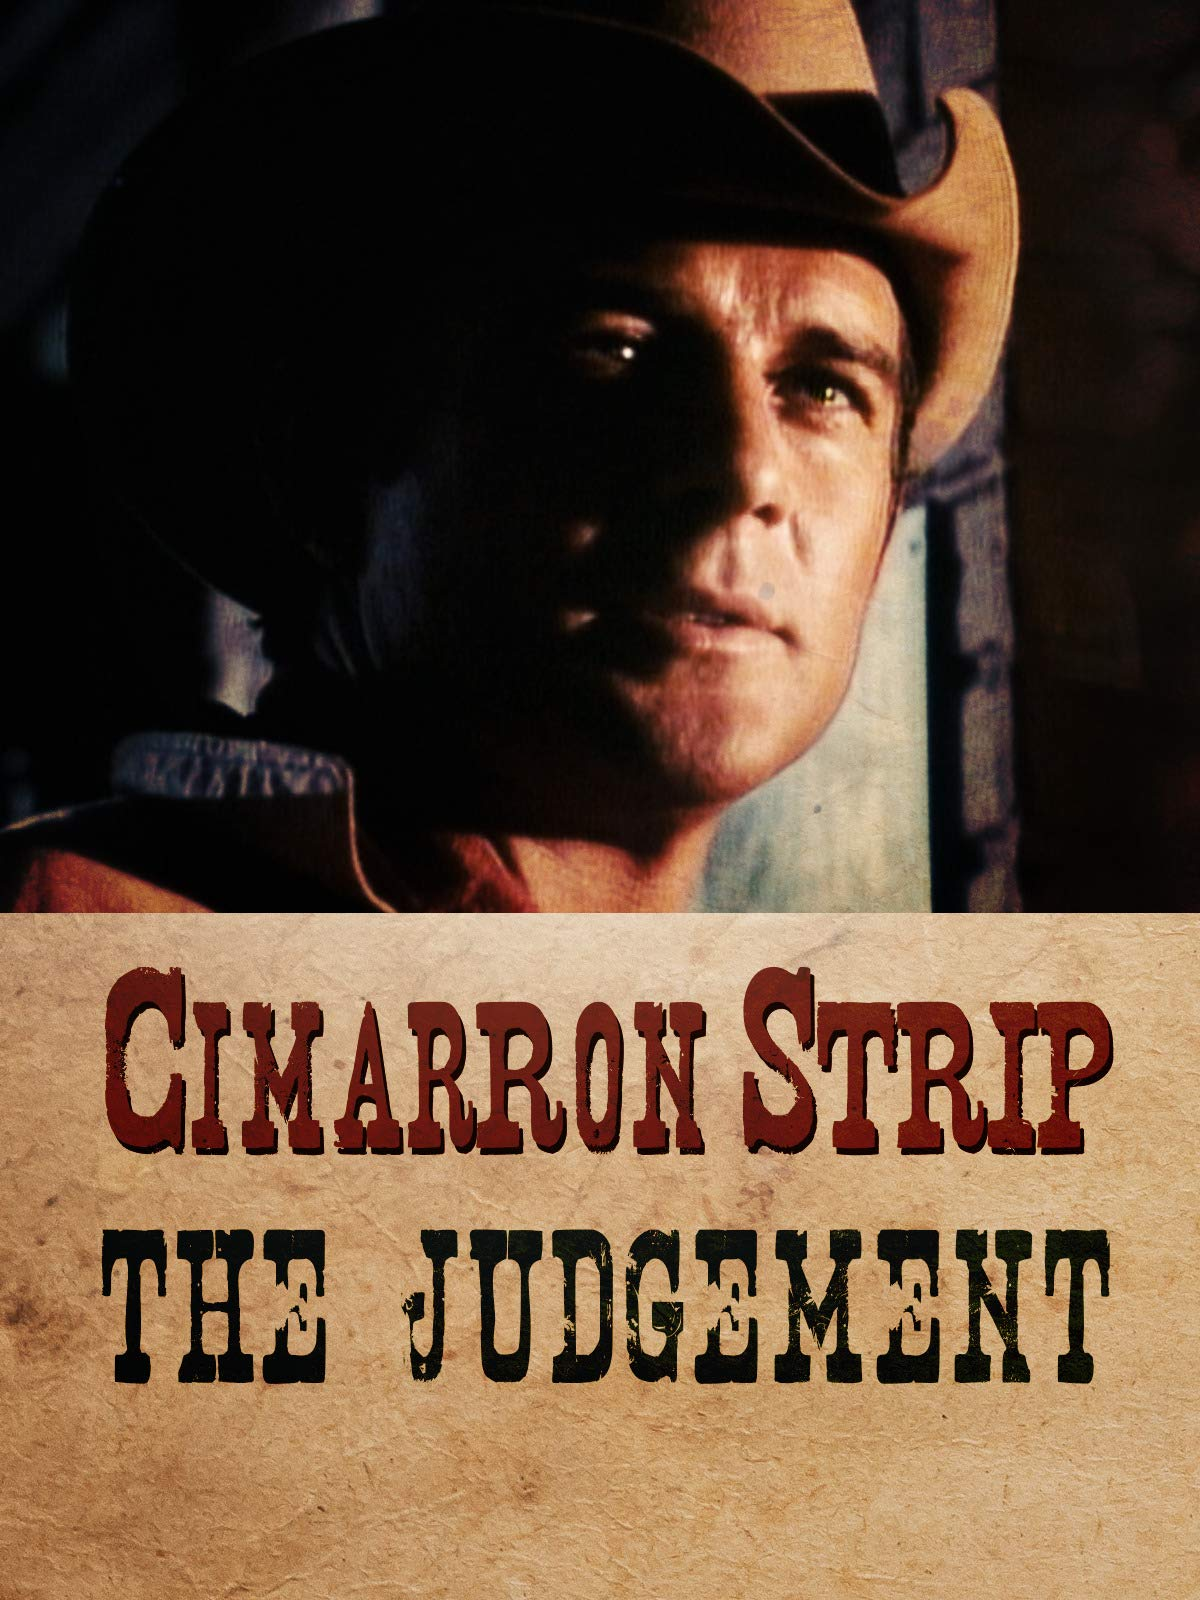 Cimarron Strip - The Judgement